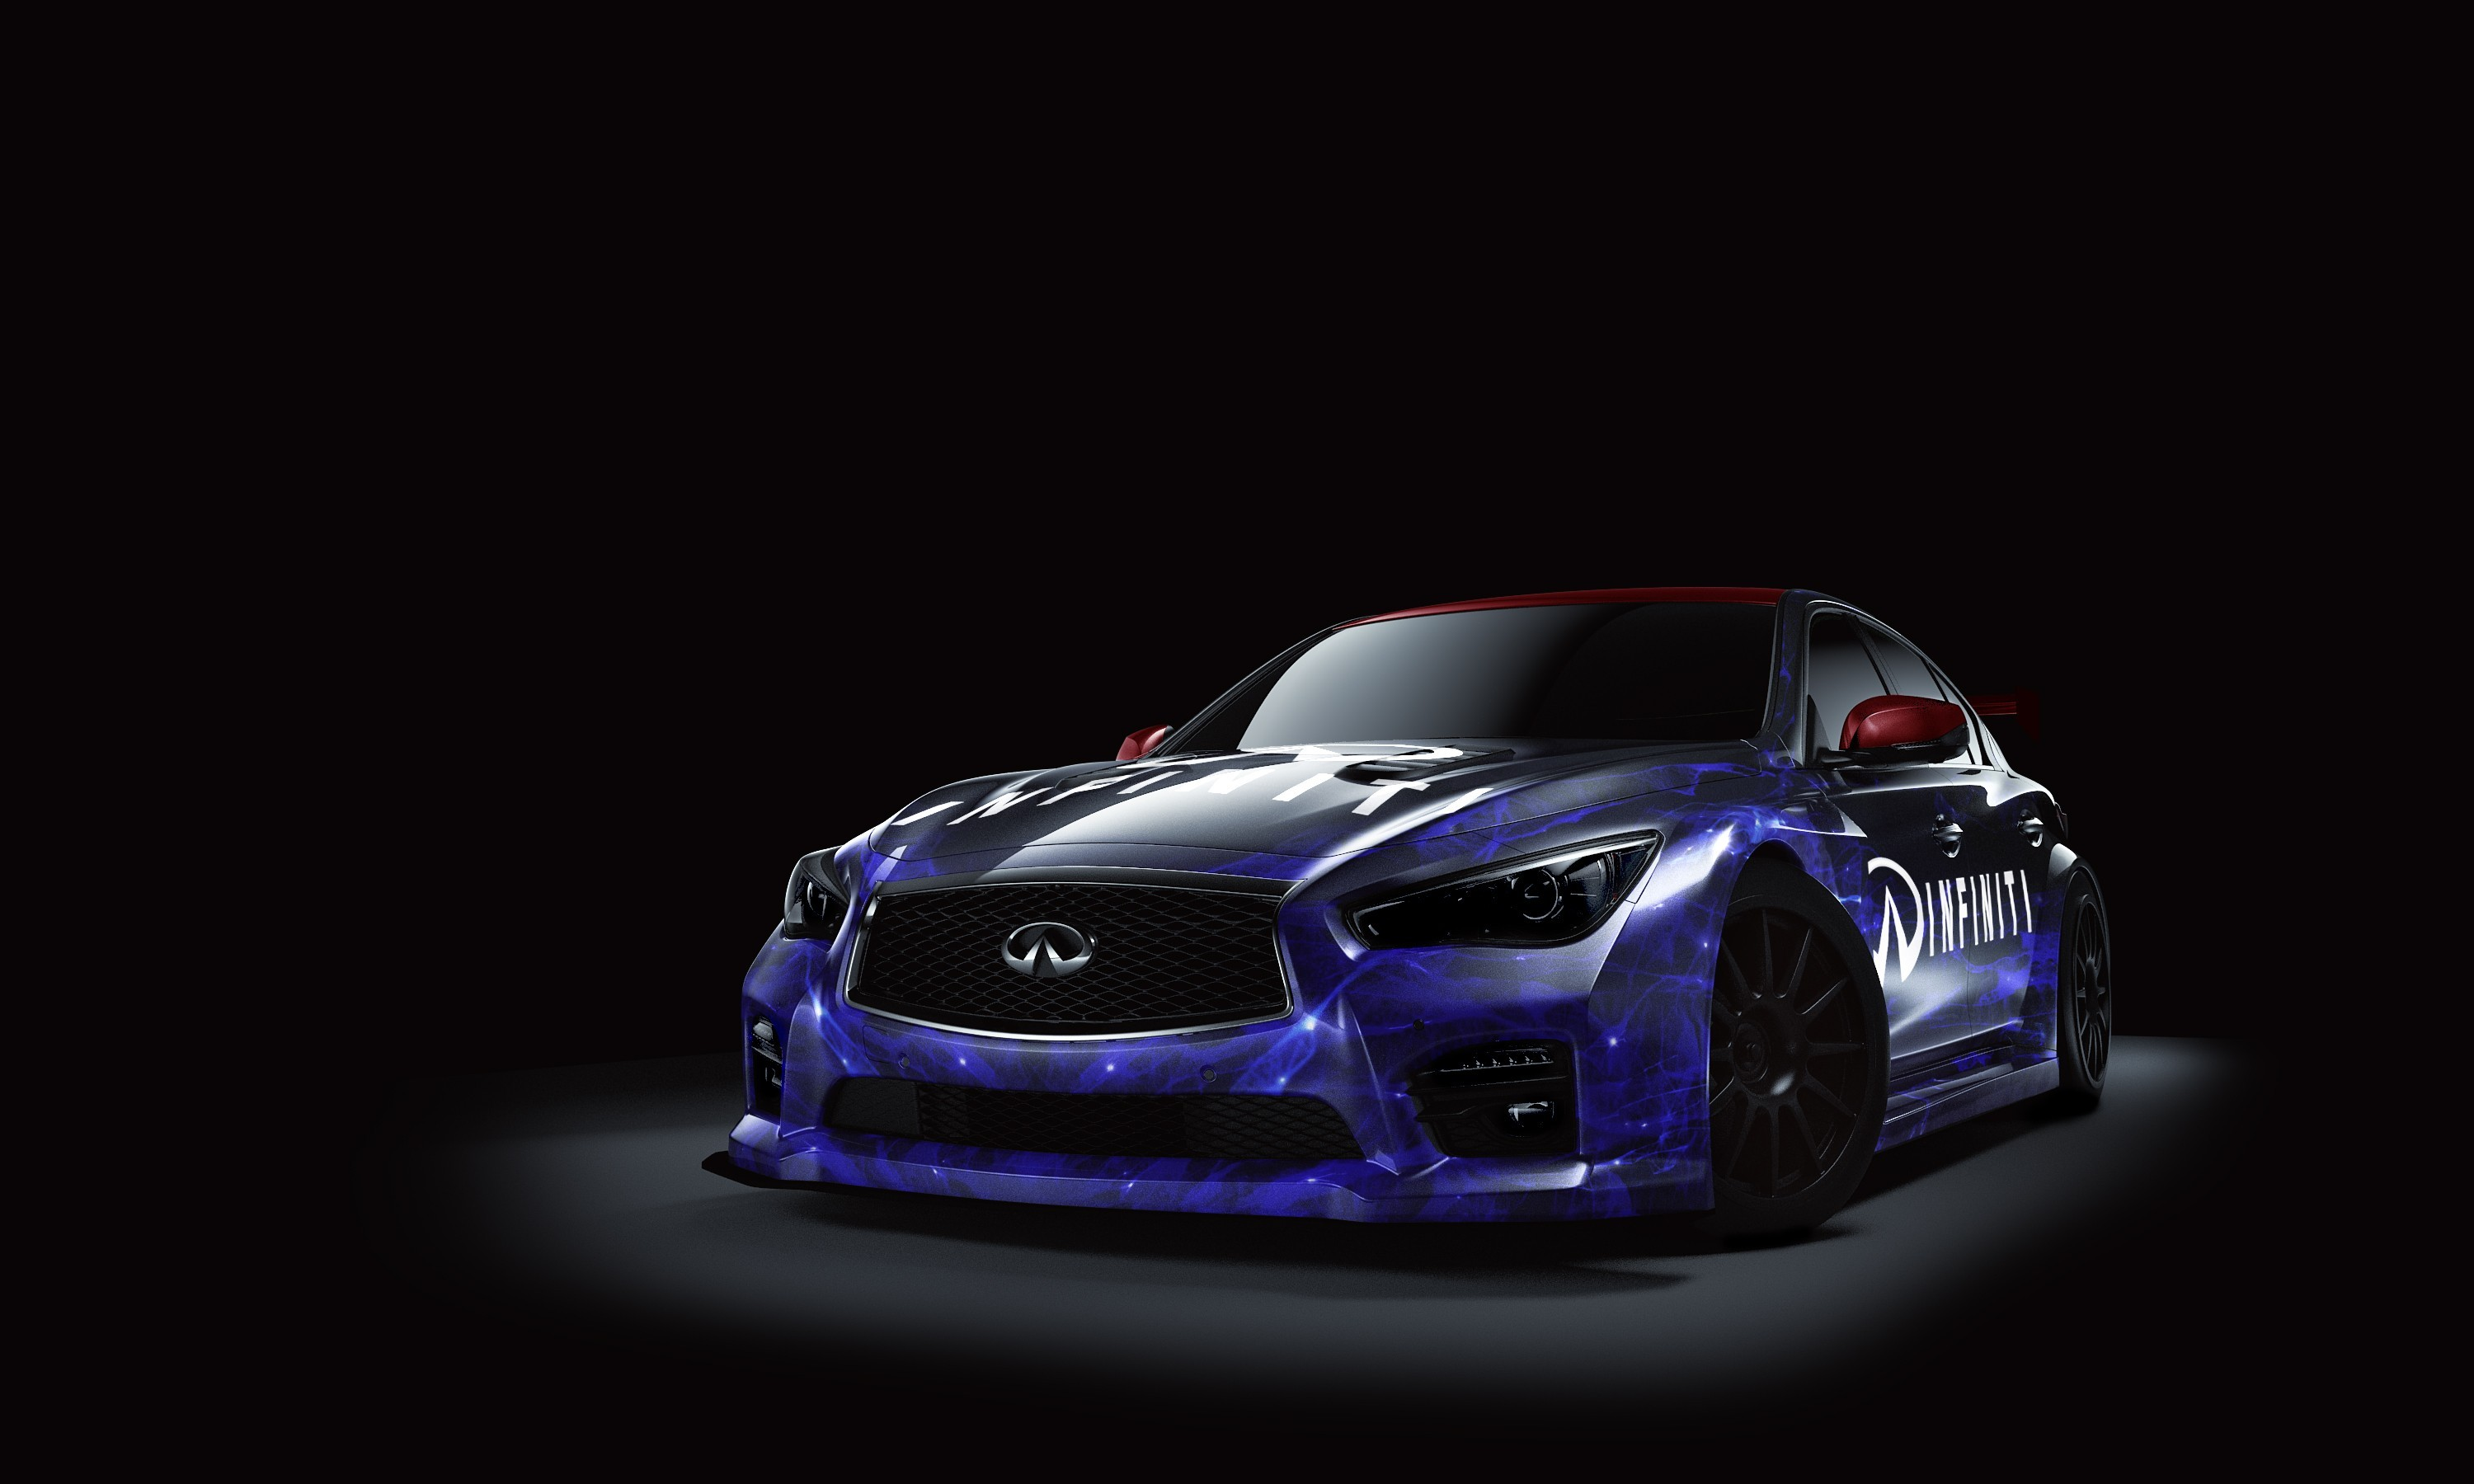 images com wallpapers infinity infiniti hd rimbuz